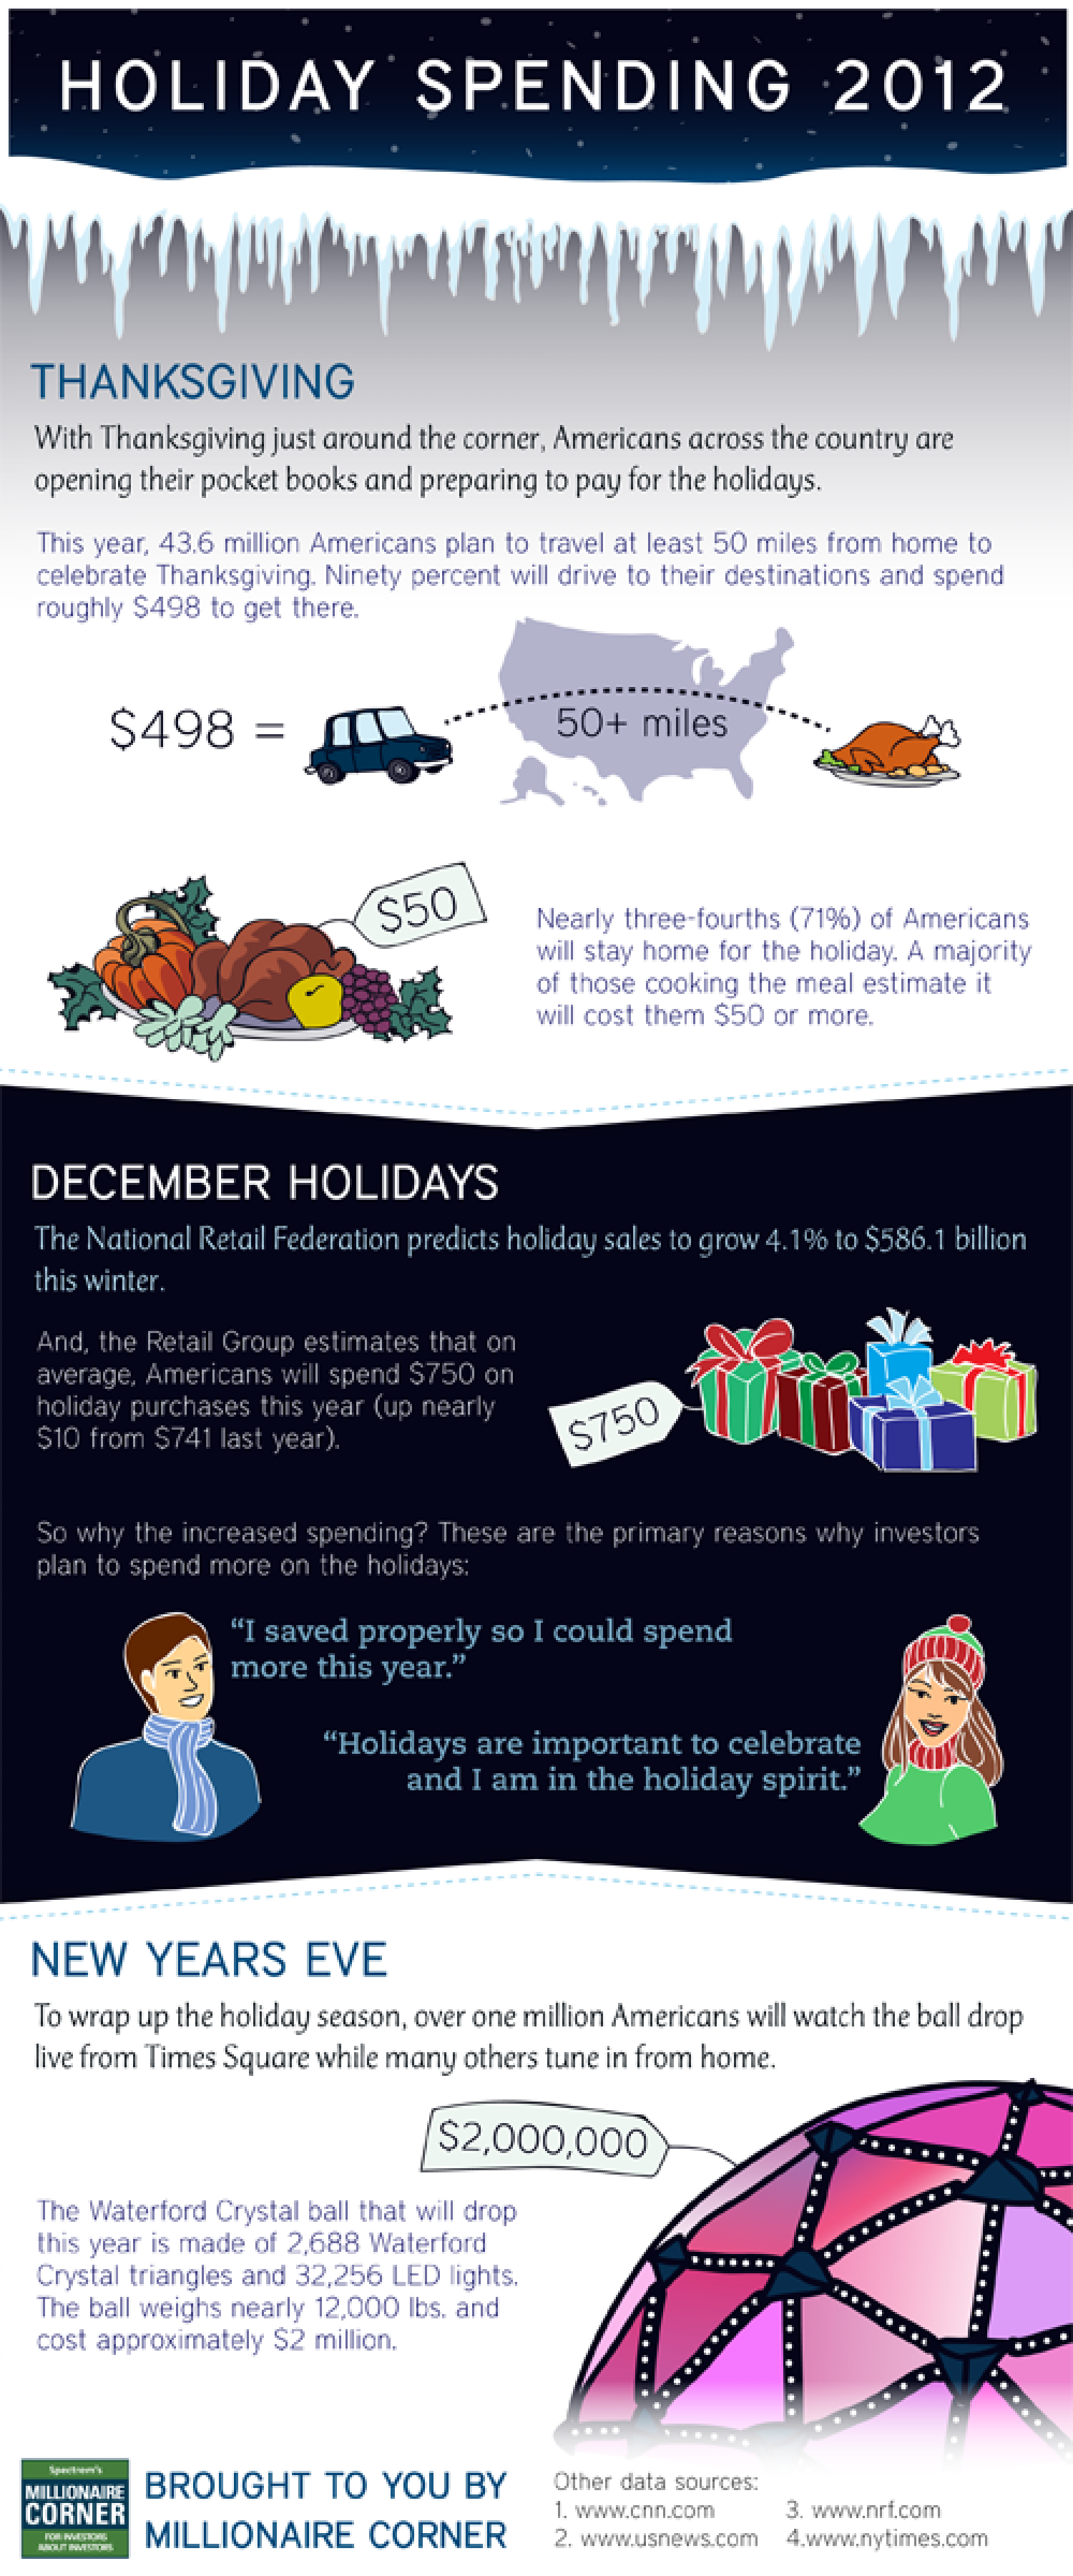 Holiday Spending 2012 Infographic